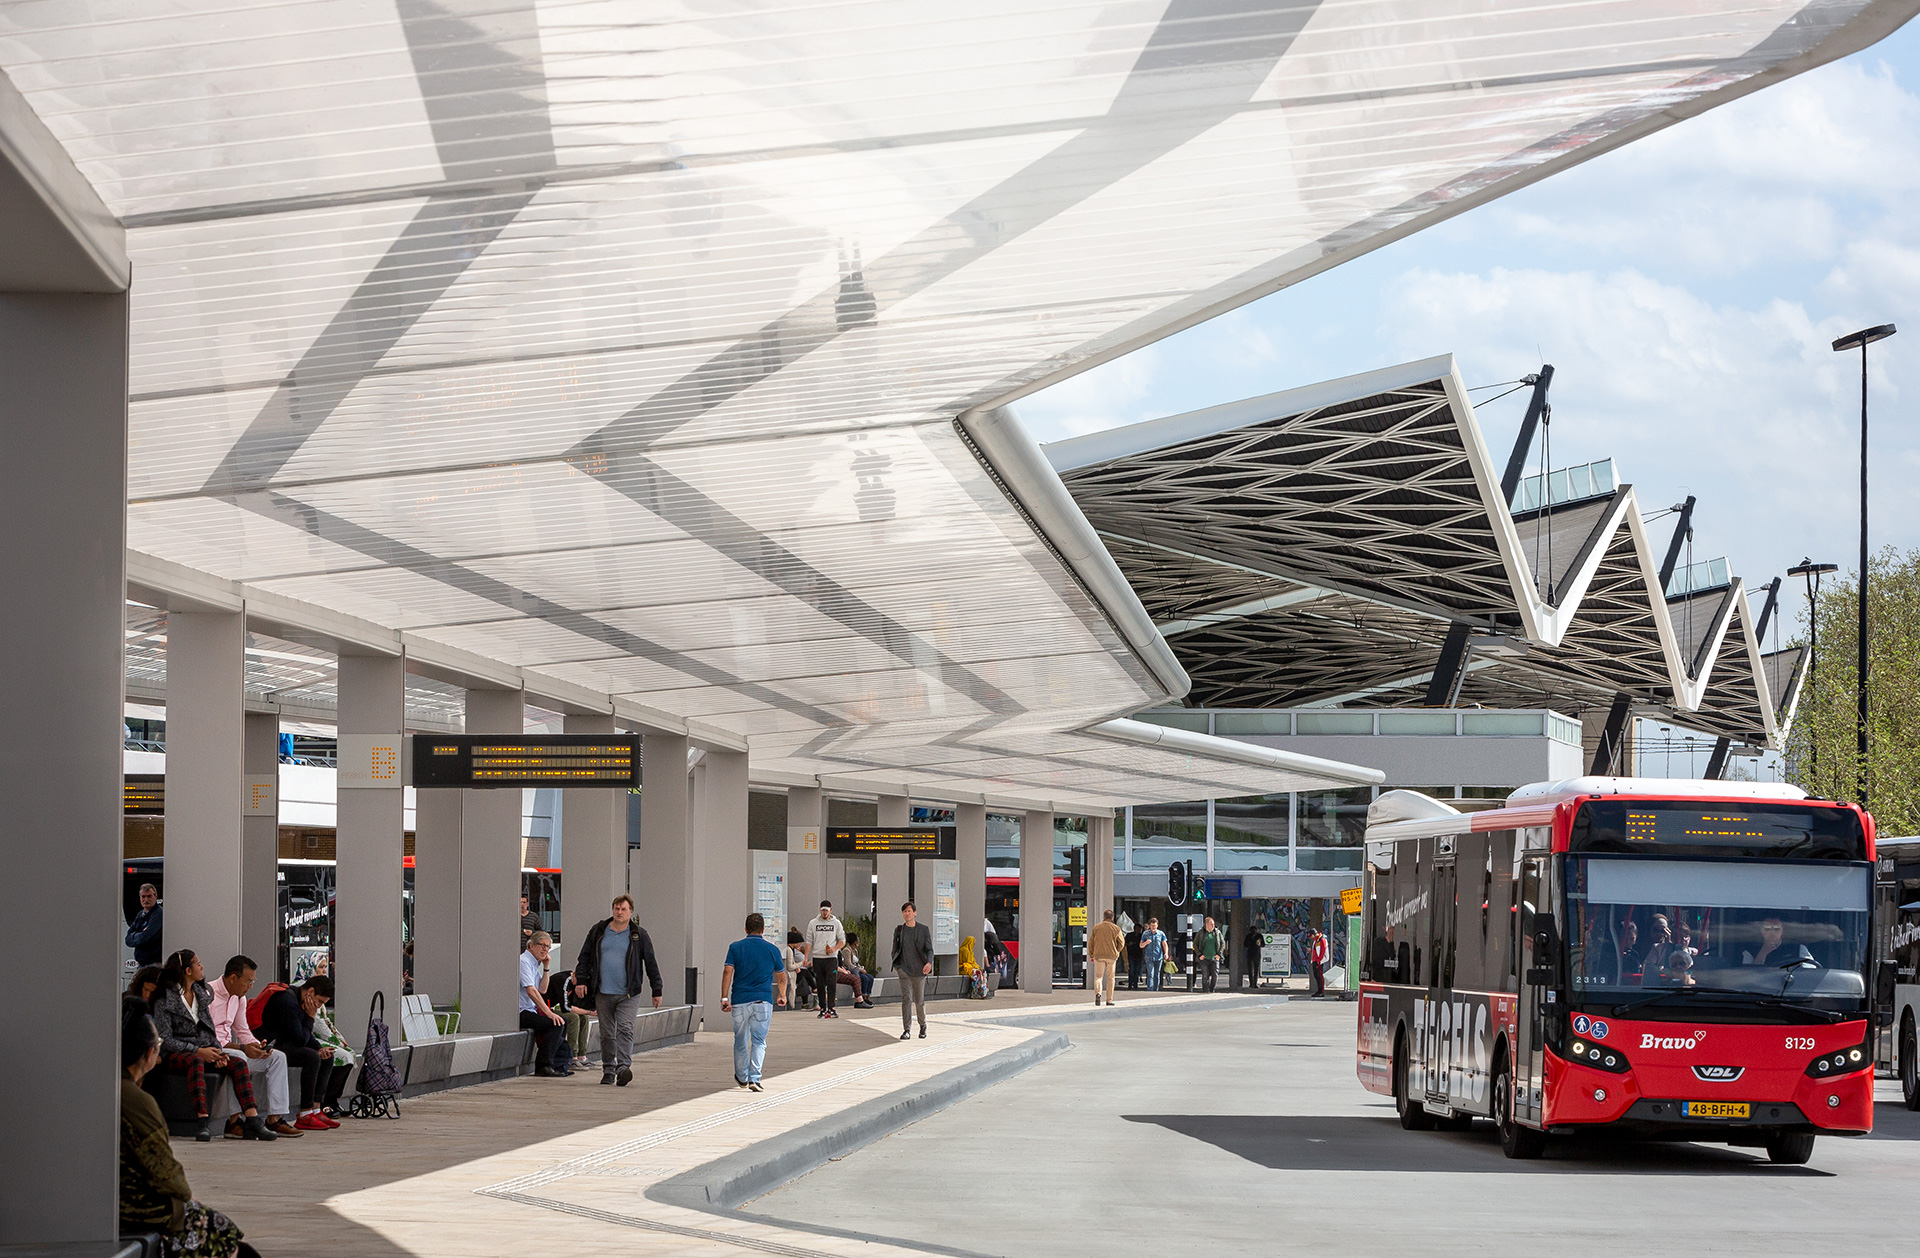 The awning of the Tilburg bus station consisting of a steel framework covered with ETFE-foil provides covers not only the bus platforms and but additionally part of the buses thereby sheltering the travellers from extremities of the weather| Tilburg Bus Station| Cepezed| STIR